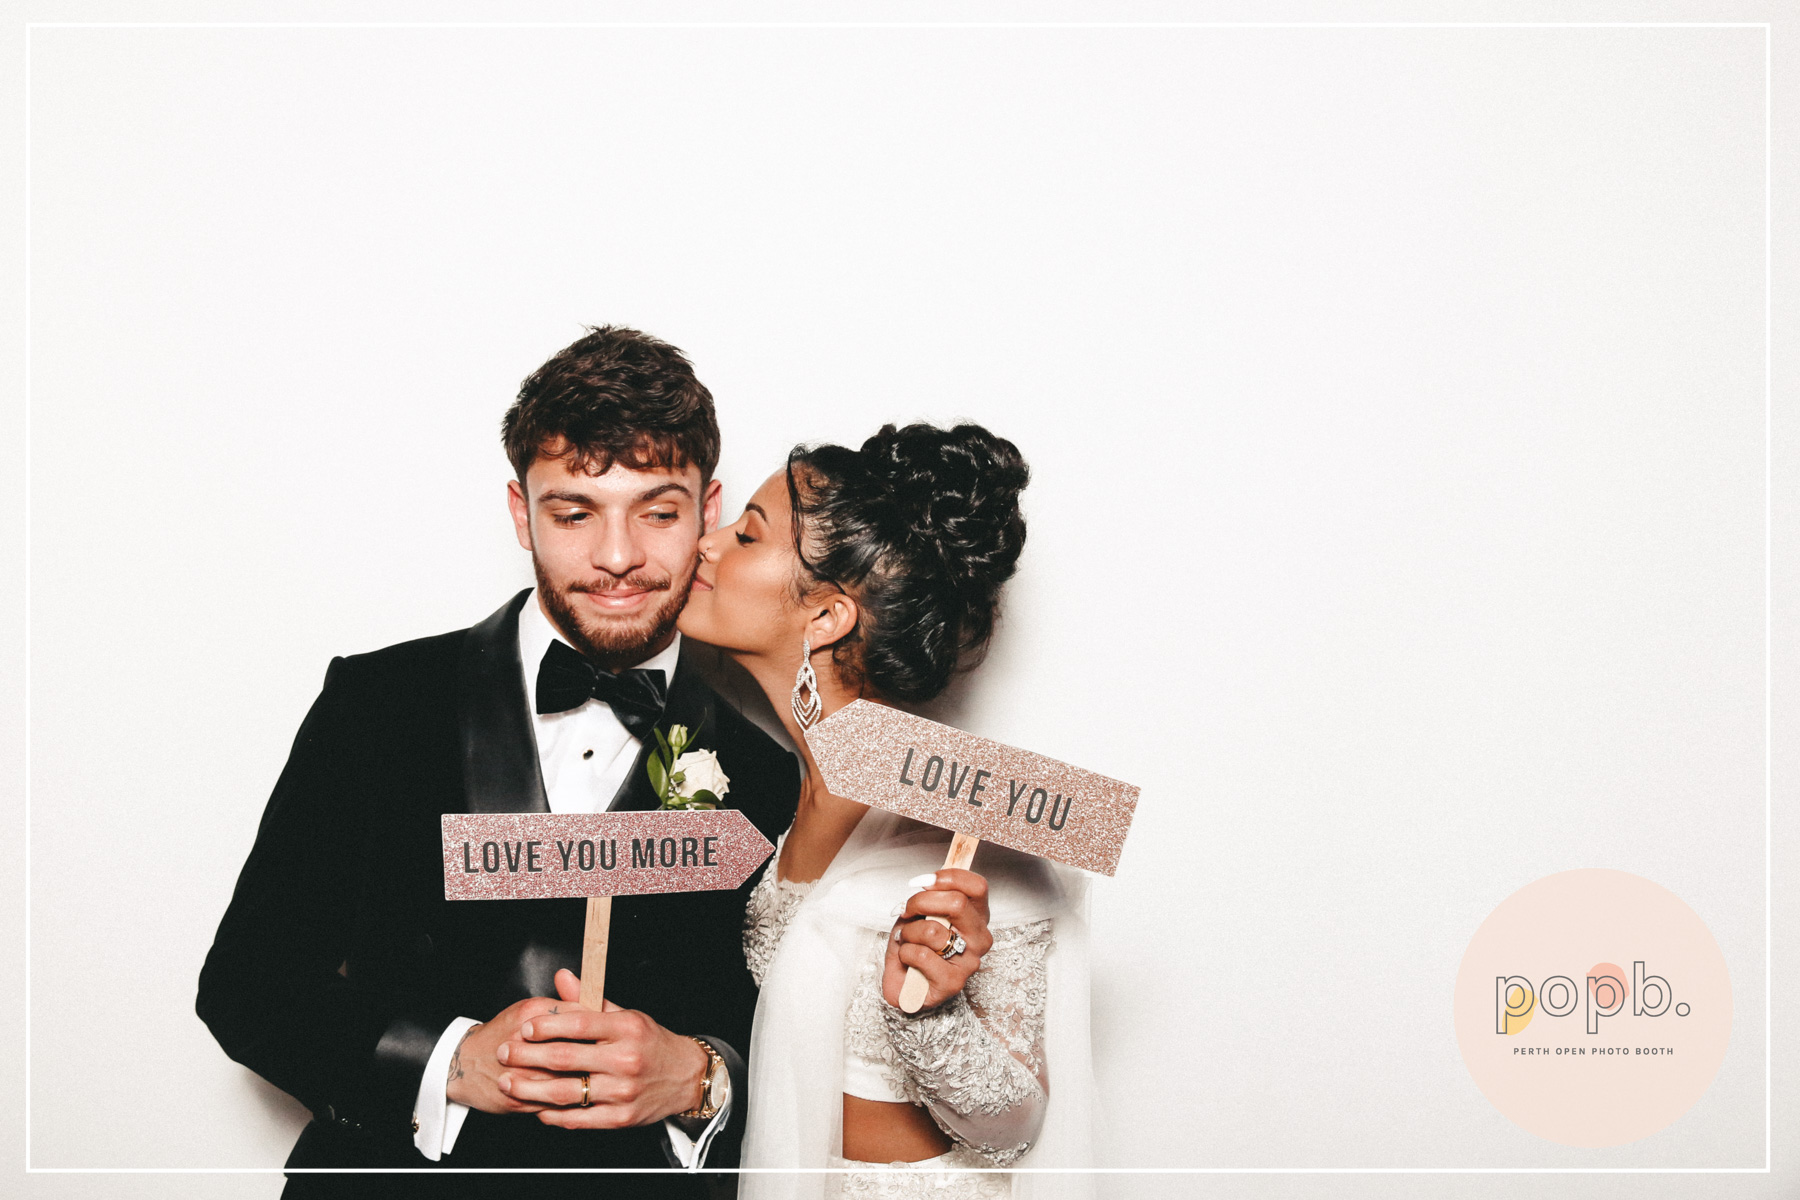 daniel + sharon's wedding - pASSWORD: PROVIDED ON THE NIGHT- ALL LOWERCASE -